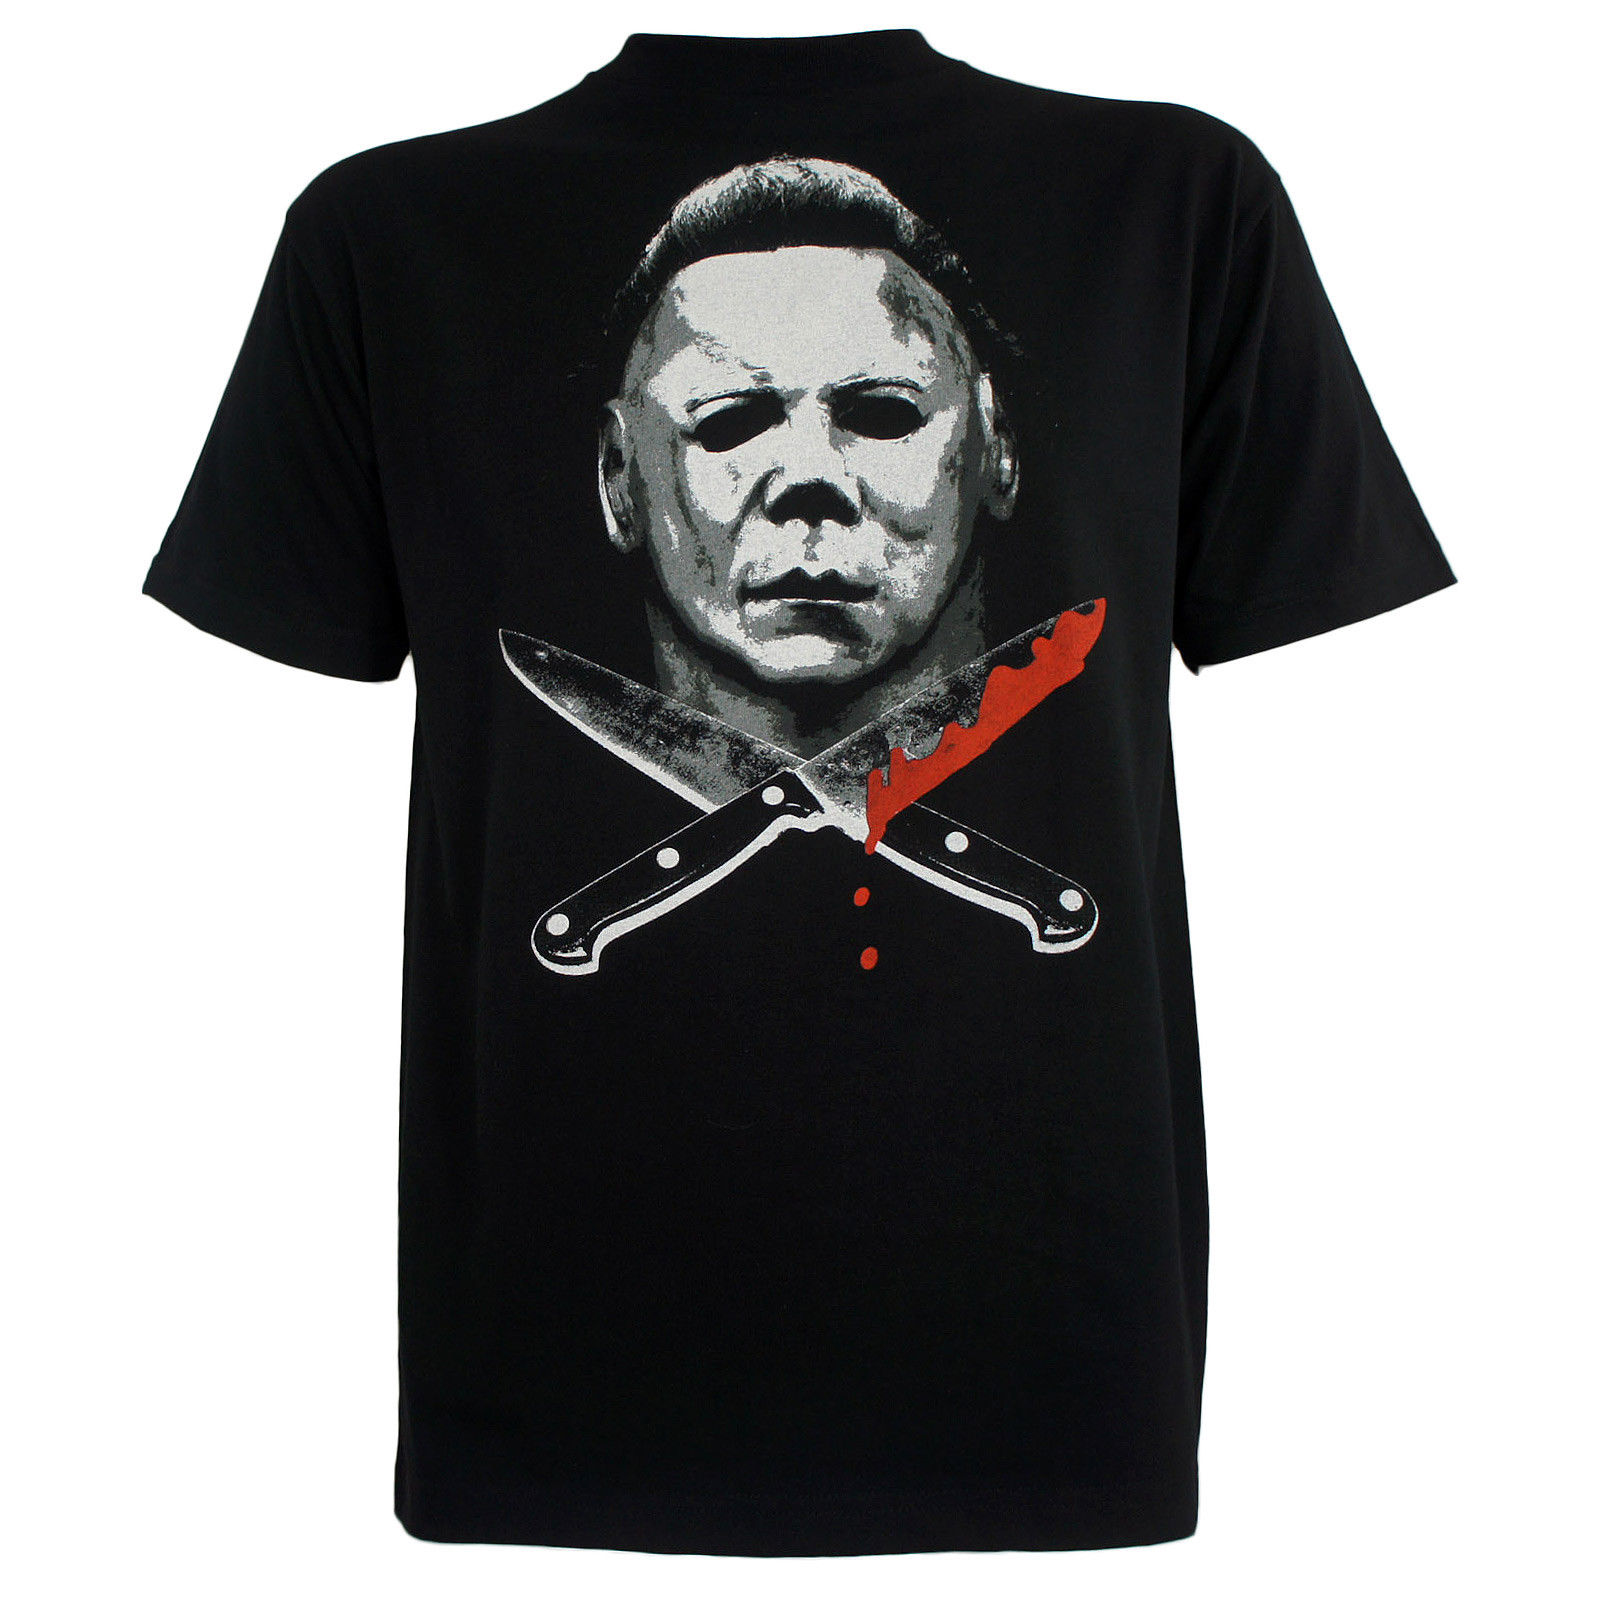 Authentic HALLOWEEN Movie Michael Myers Knives Face T-Shirt S-3XL NEW T Shirts Man Clothing Free Shipping Top Tee Plus Size